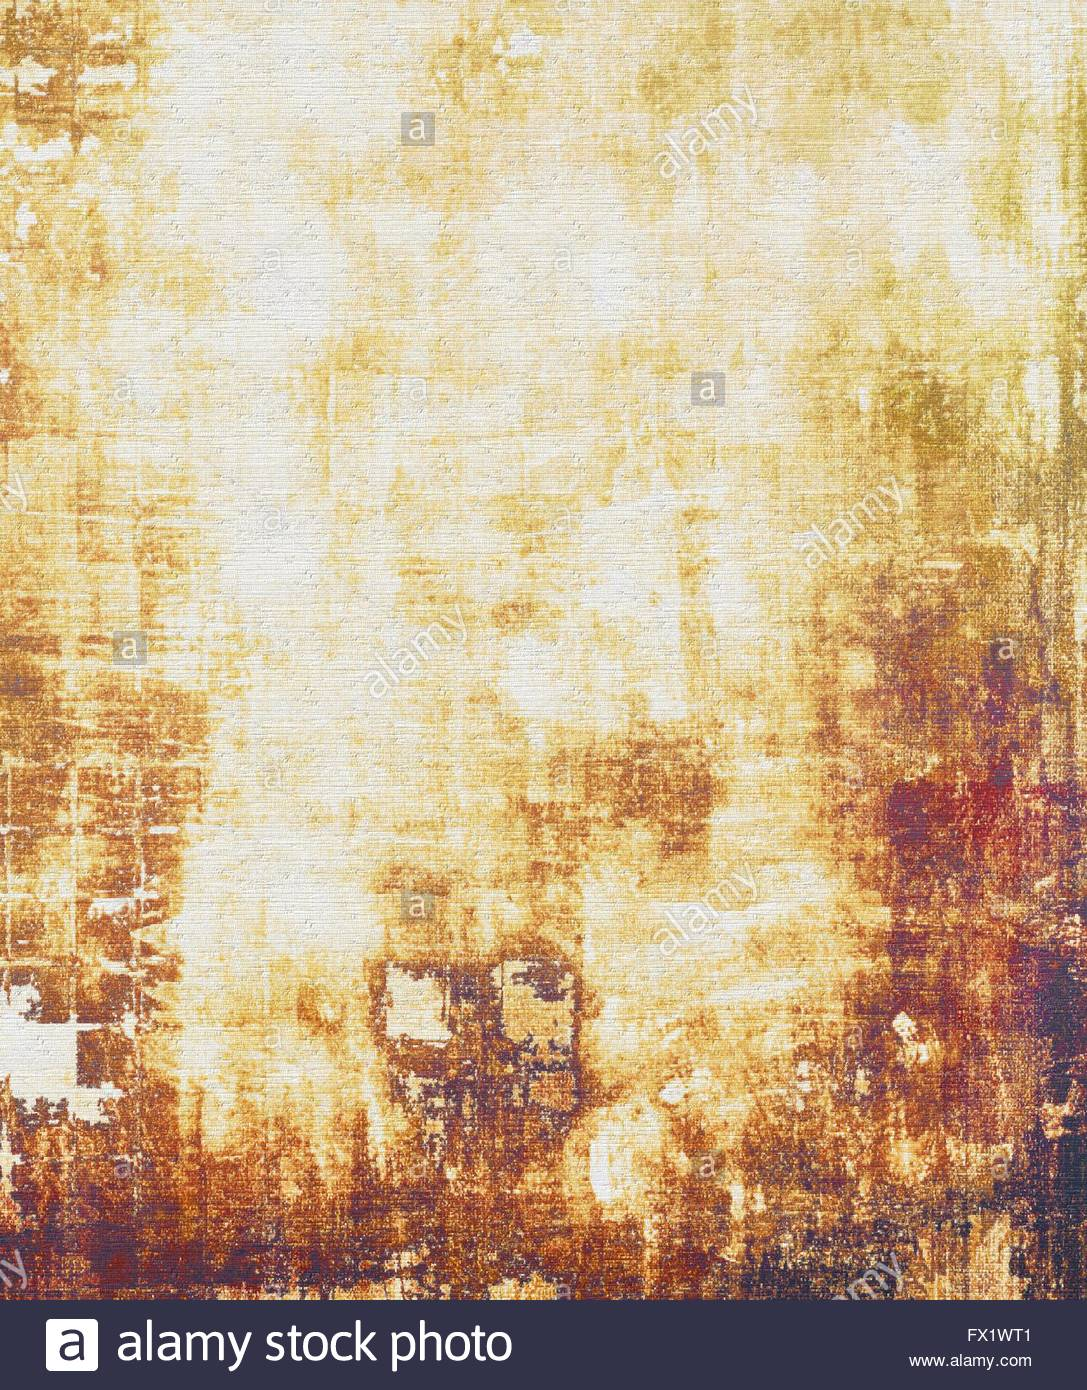 Antique vintage texture old fashioned weathered background With 1087x1390